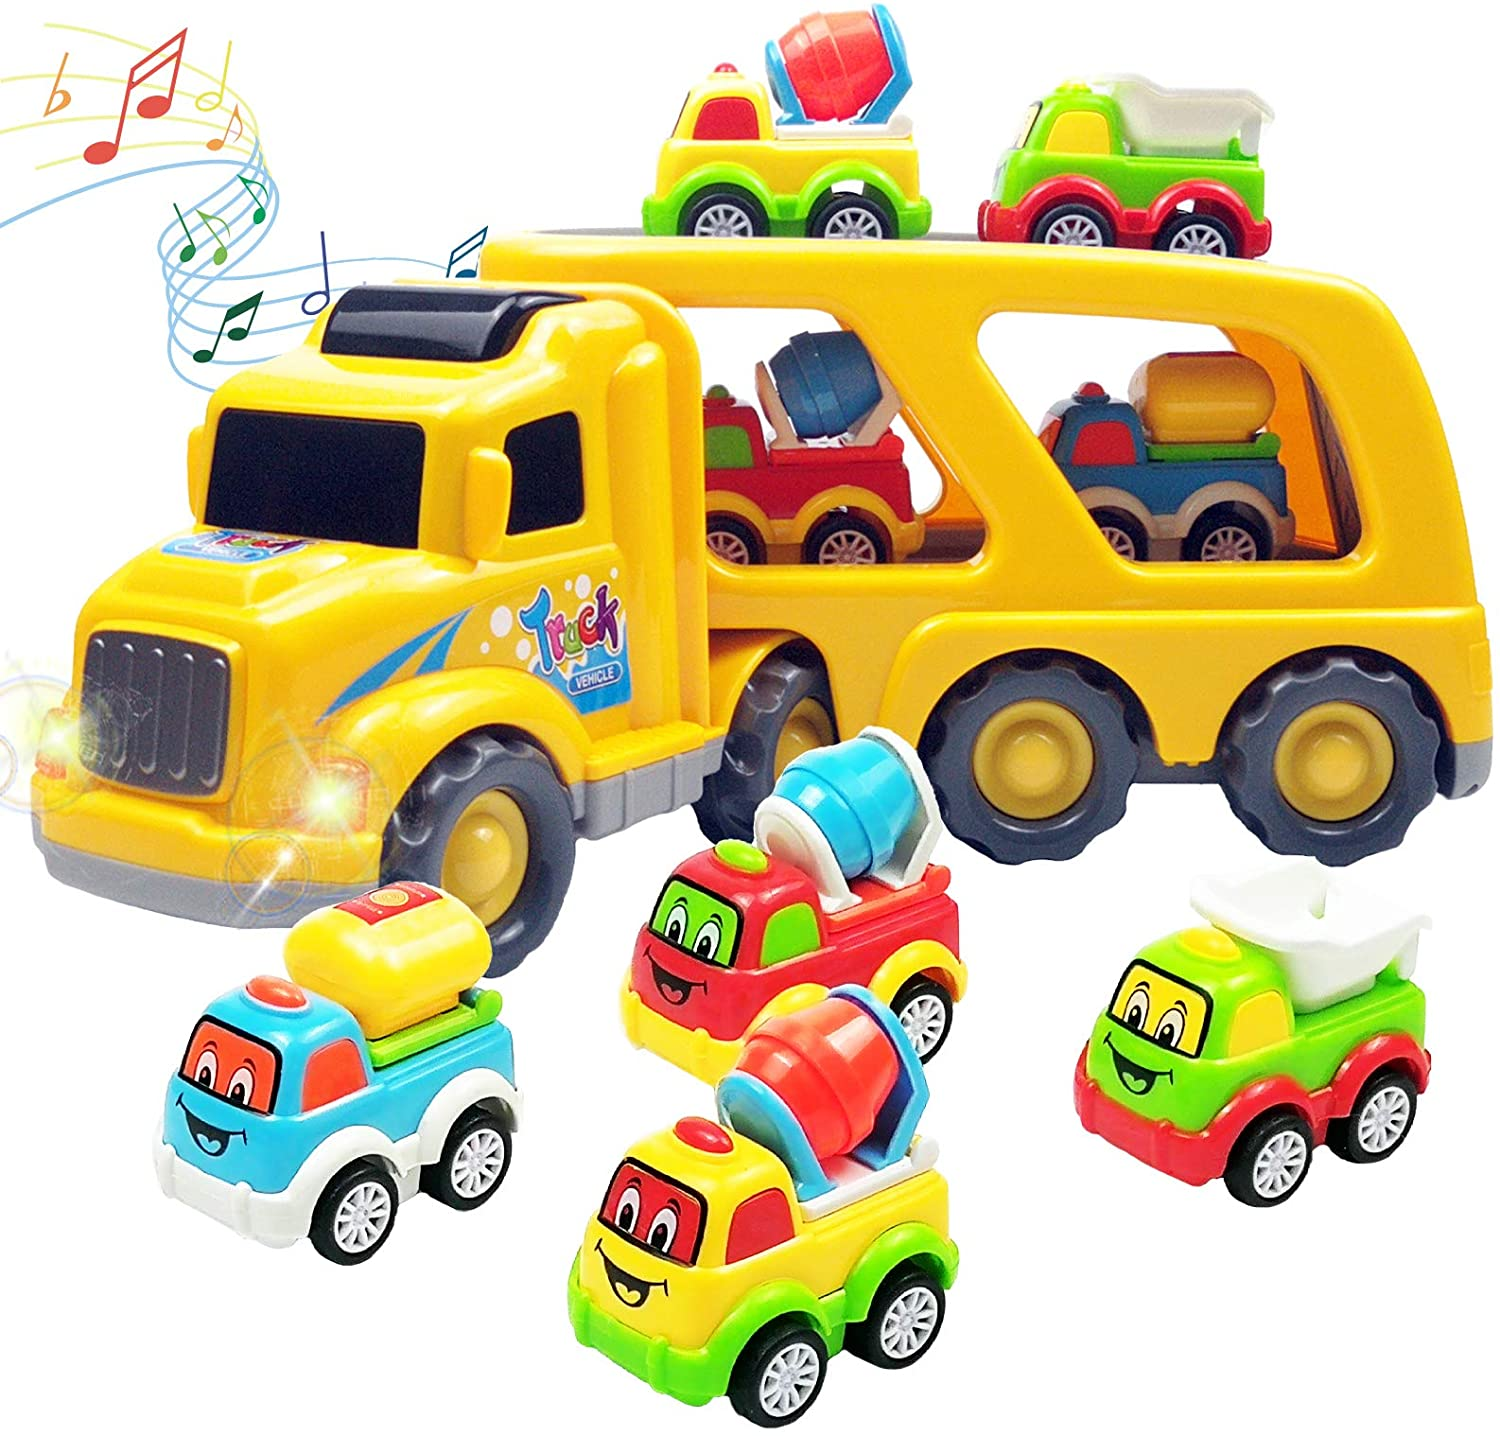 Faeny 5 in 1 Engineering Vehicle Set Contain 4 Construction Truck and 1 Large Carrier Truck with Sound and Light, Friction Power Toy Car for Kids, Boys & Girls Aged 3+ (Cartoon Construction)